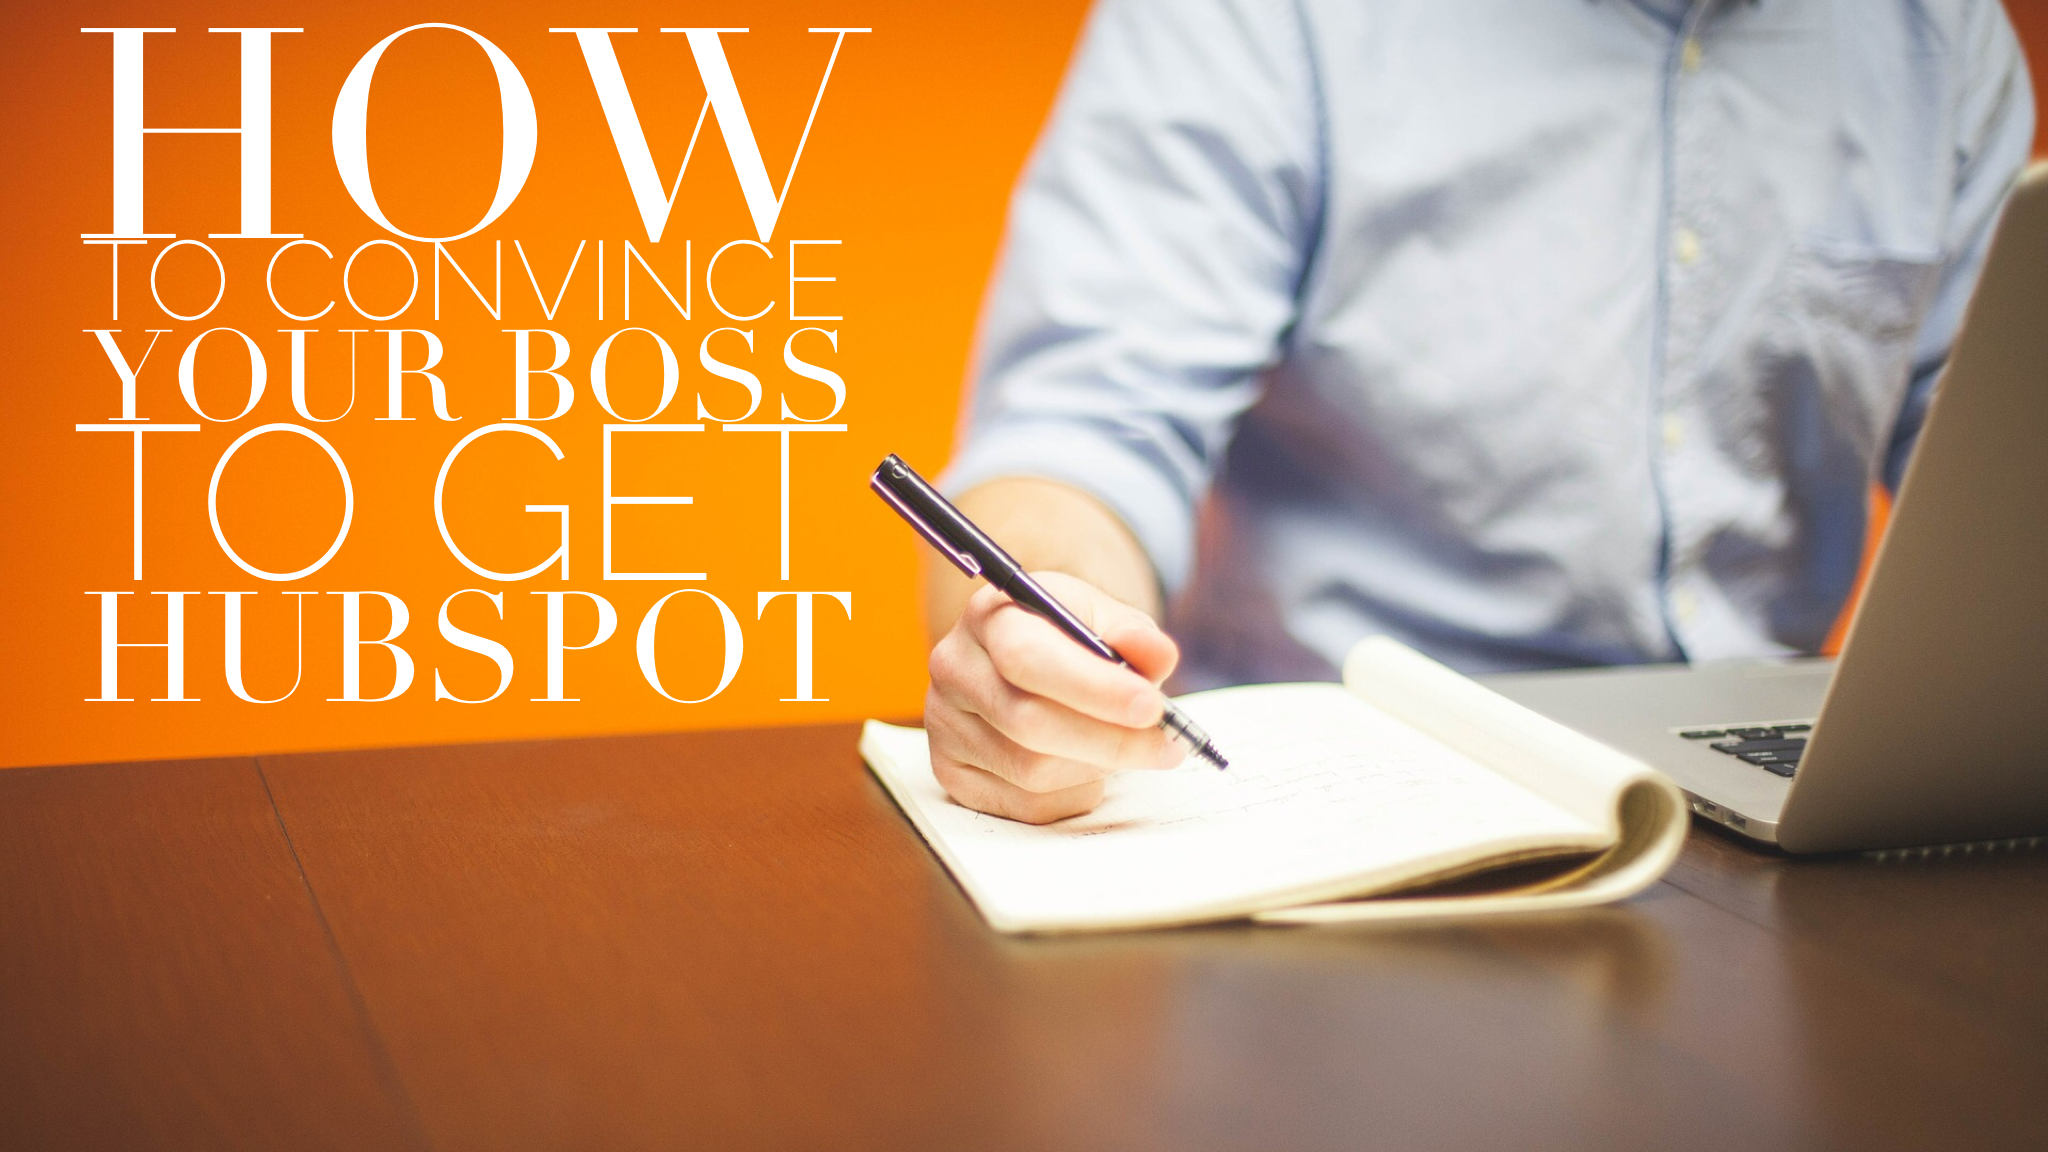 How to convince your boss to get HubSpot